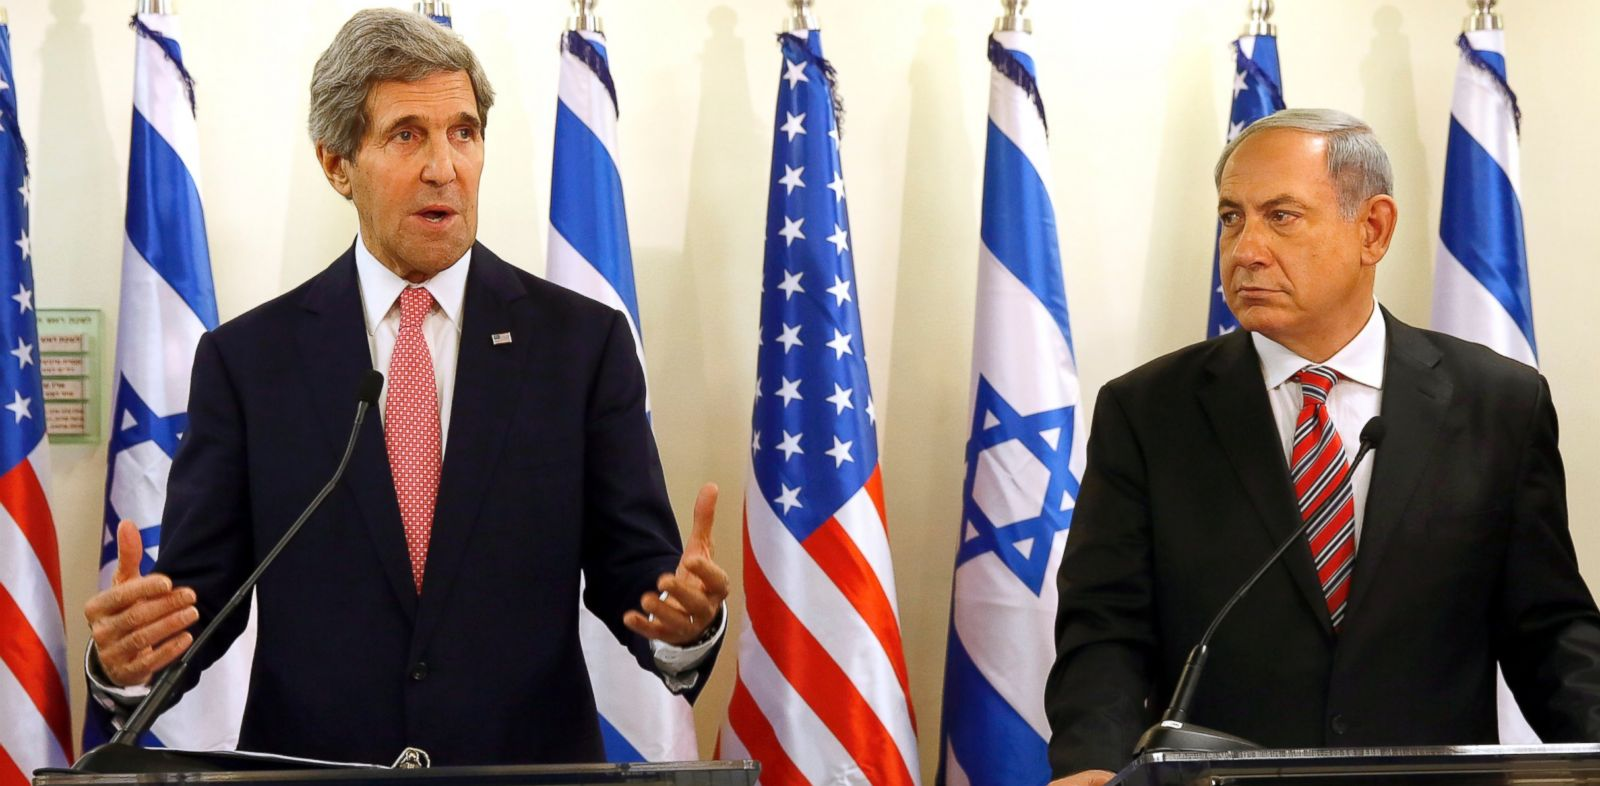 PHOTO: Israeli Prime Minister Benjamin Netanyahu holds a joint press conference with U.S. Secretary Of State John Kerry, Dec. 5, 2013, in Jerusalem, Israel.